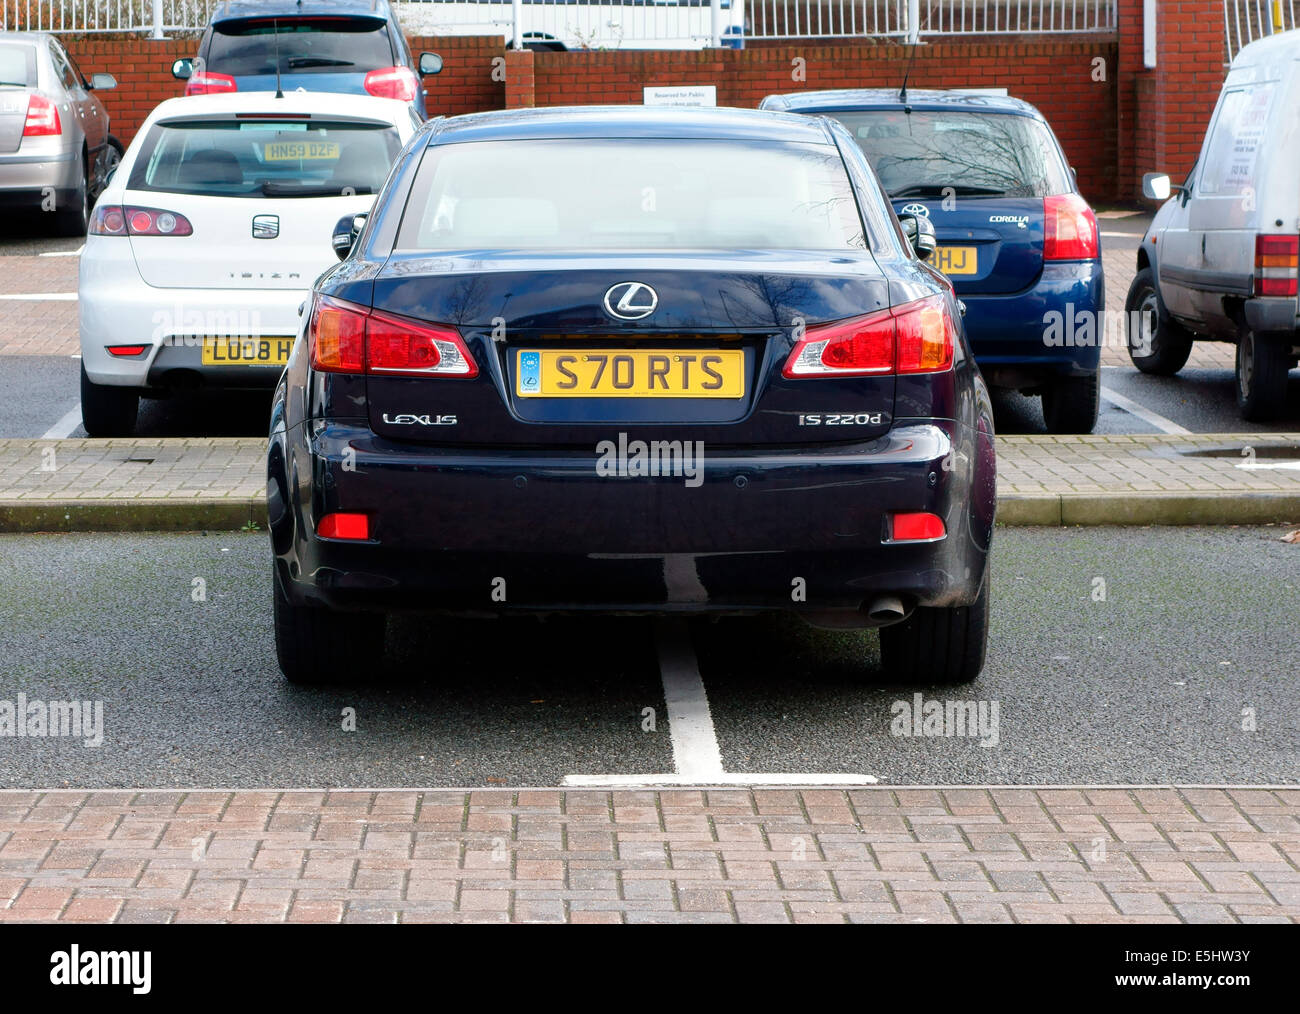 Badly parked car - Stock Image